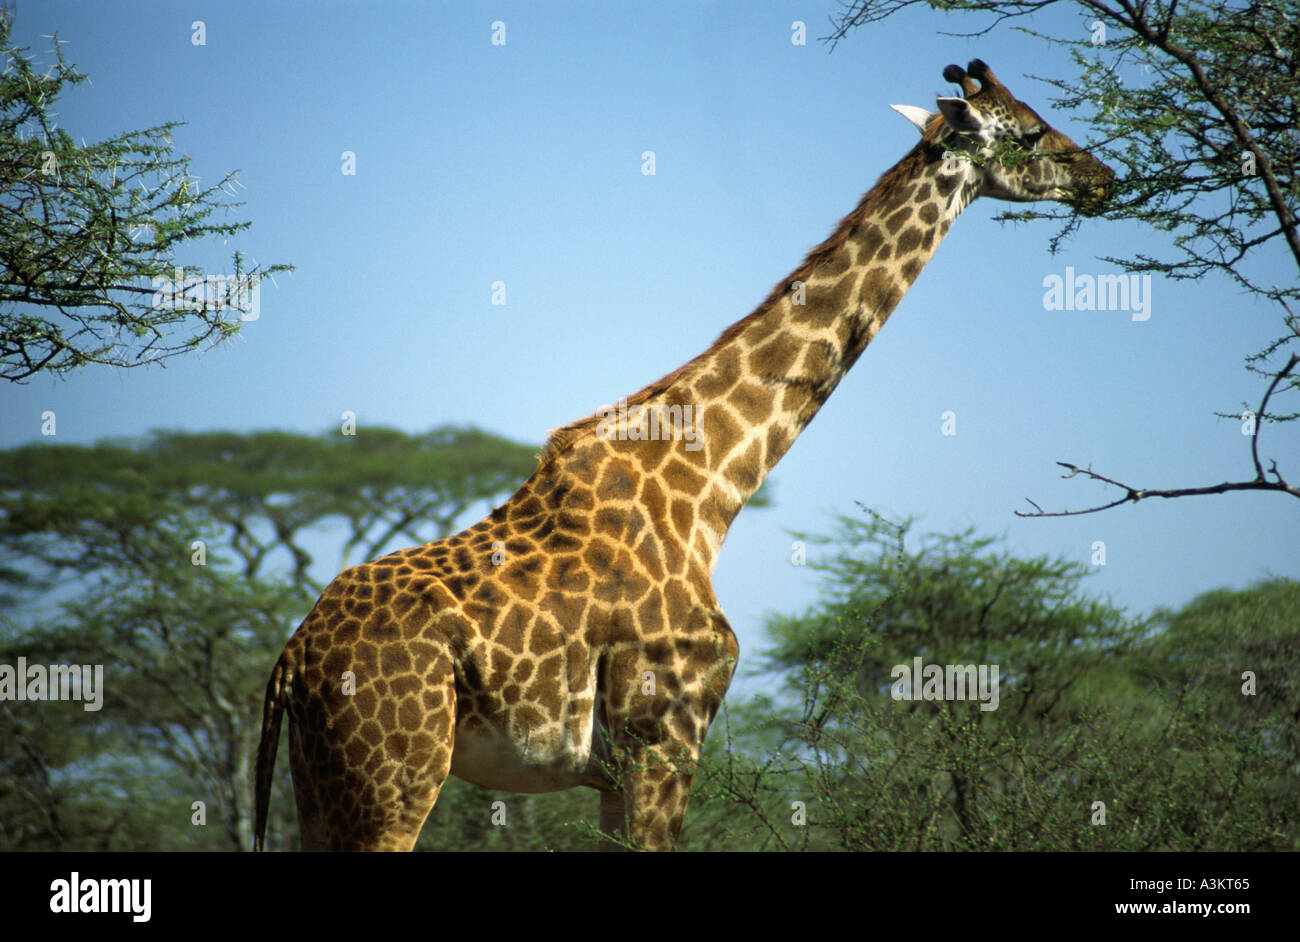 a giraffe in the Serengetti National Park, Tanzania - Stock Image